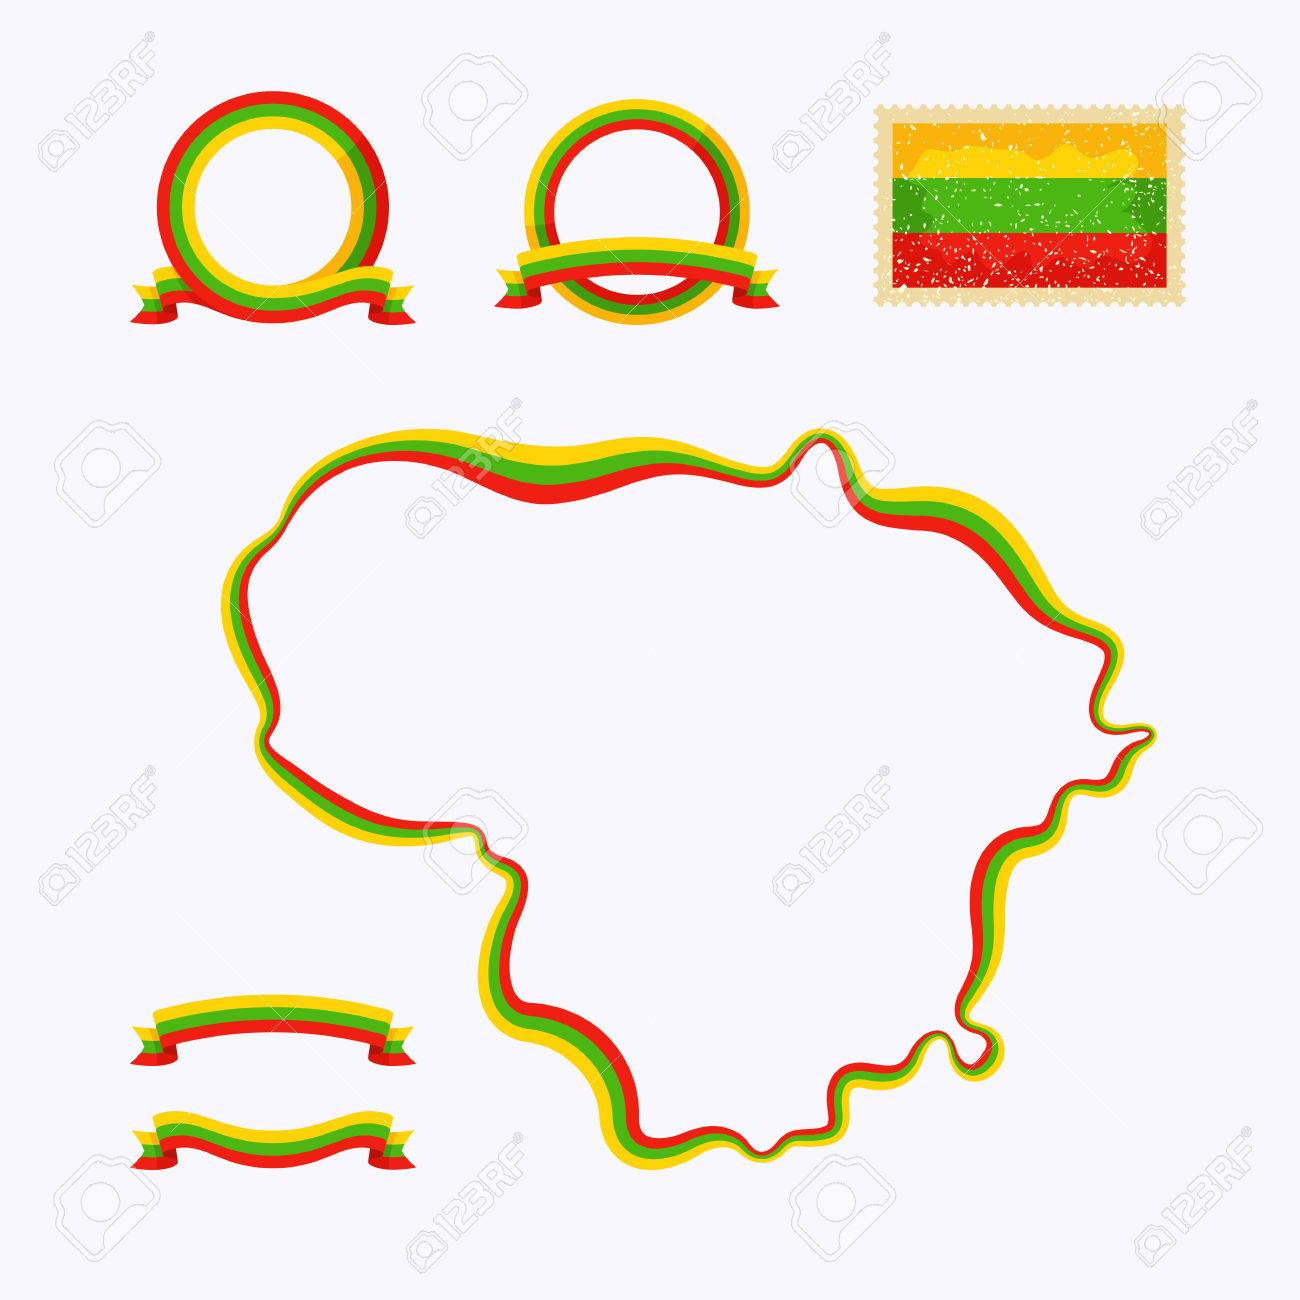 Outline Map Of Lithuania Border Is Marked With A Ribbon In The - Lithuania map vector